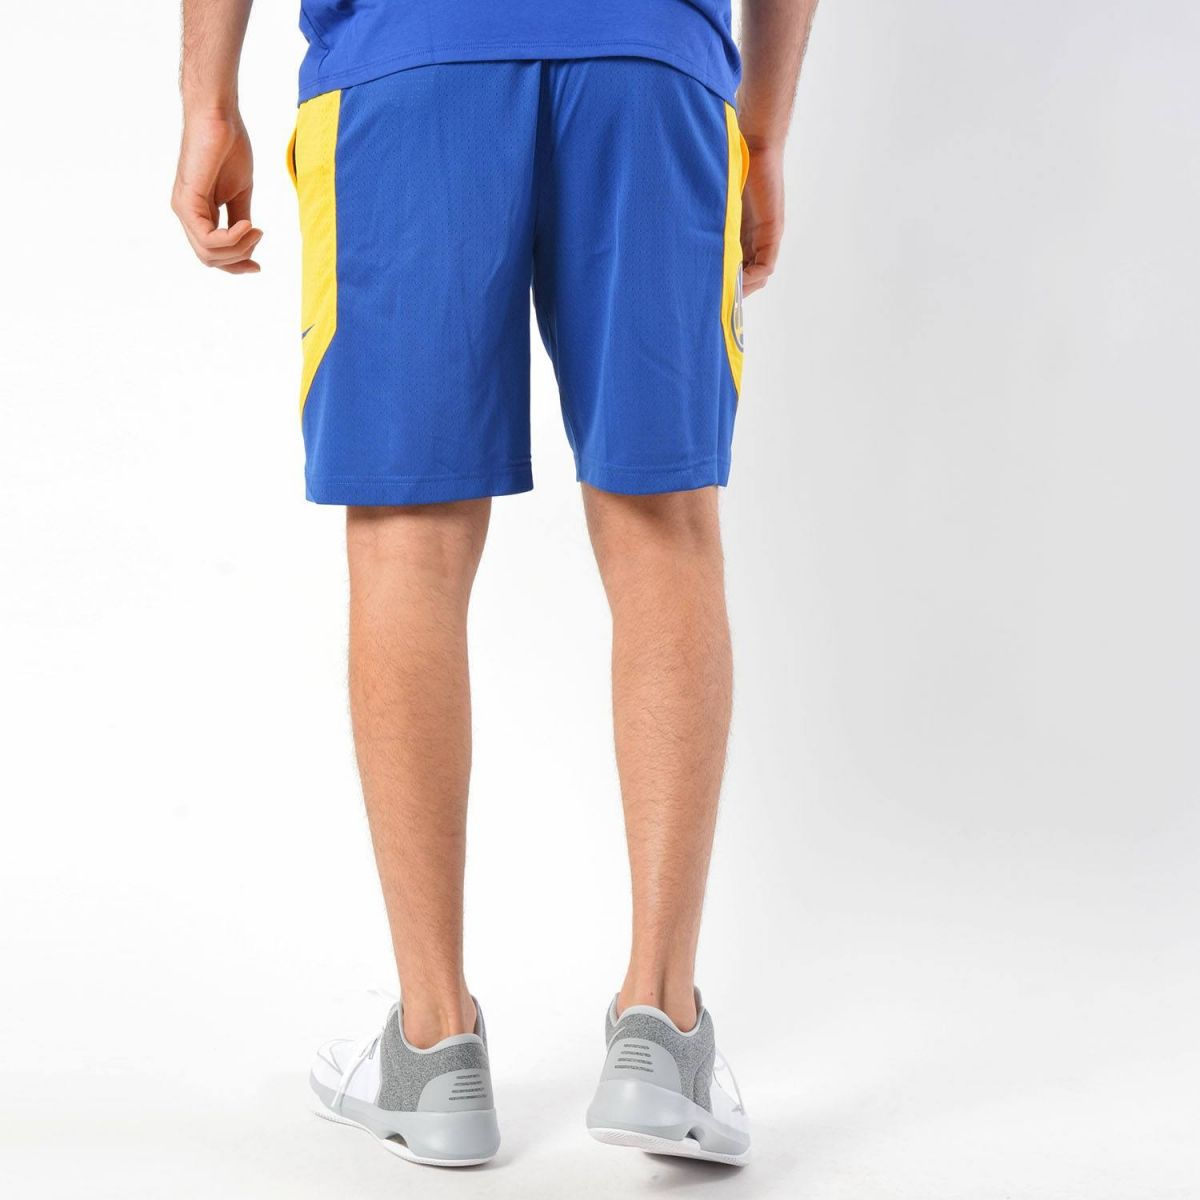 official photos 319c4 2eeee Type Shorts Nike NBA Golden State Warriors Icon Edition Swingman Shorts